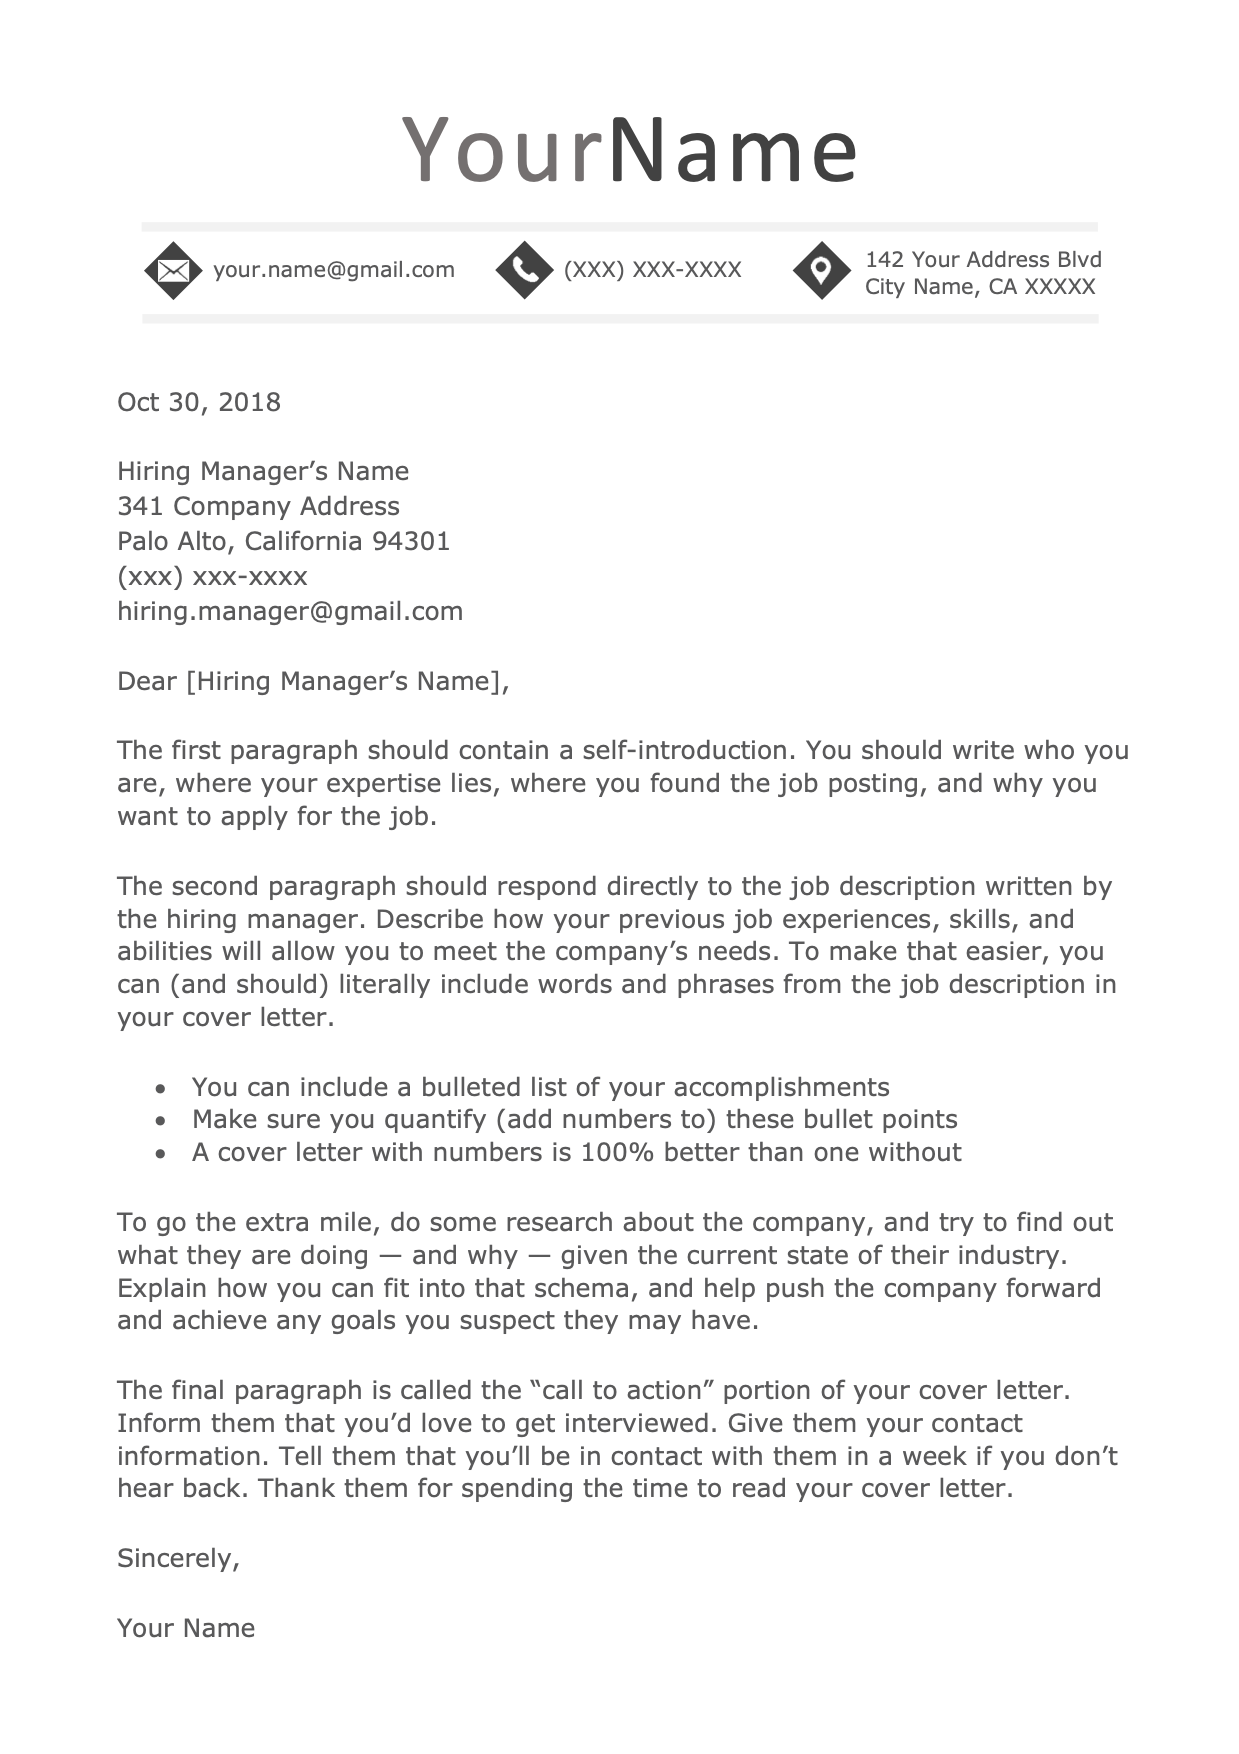 Penthouse Gray Cover Letter Rg Cover Letter Professional Cover Letter Cover Letter Template Free